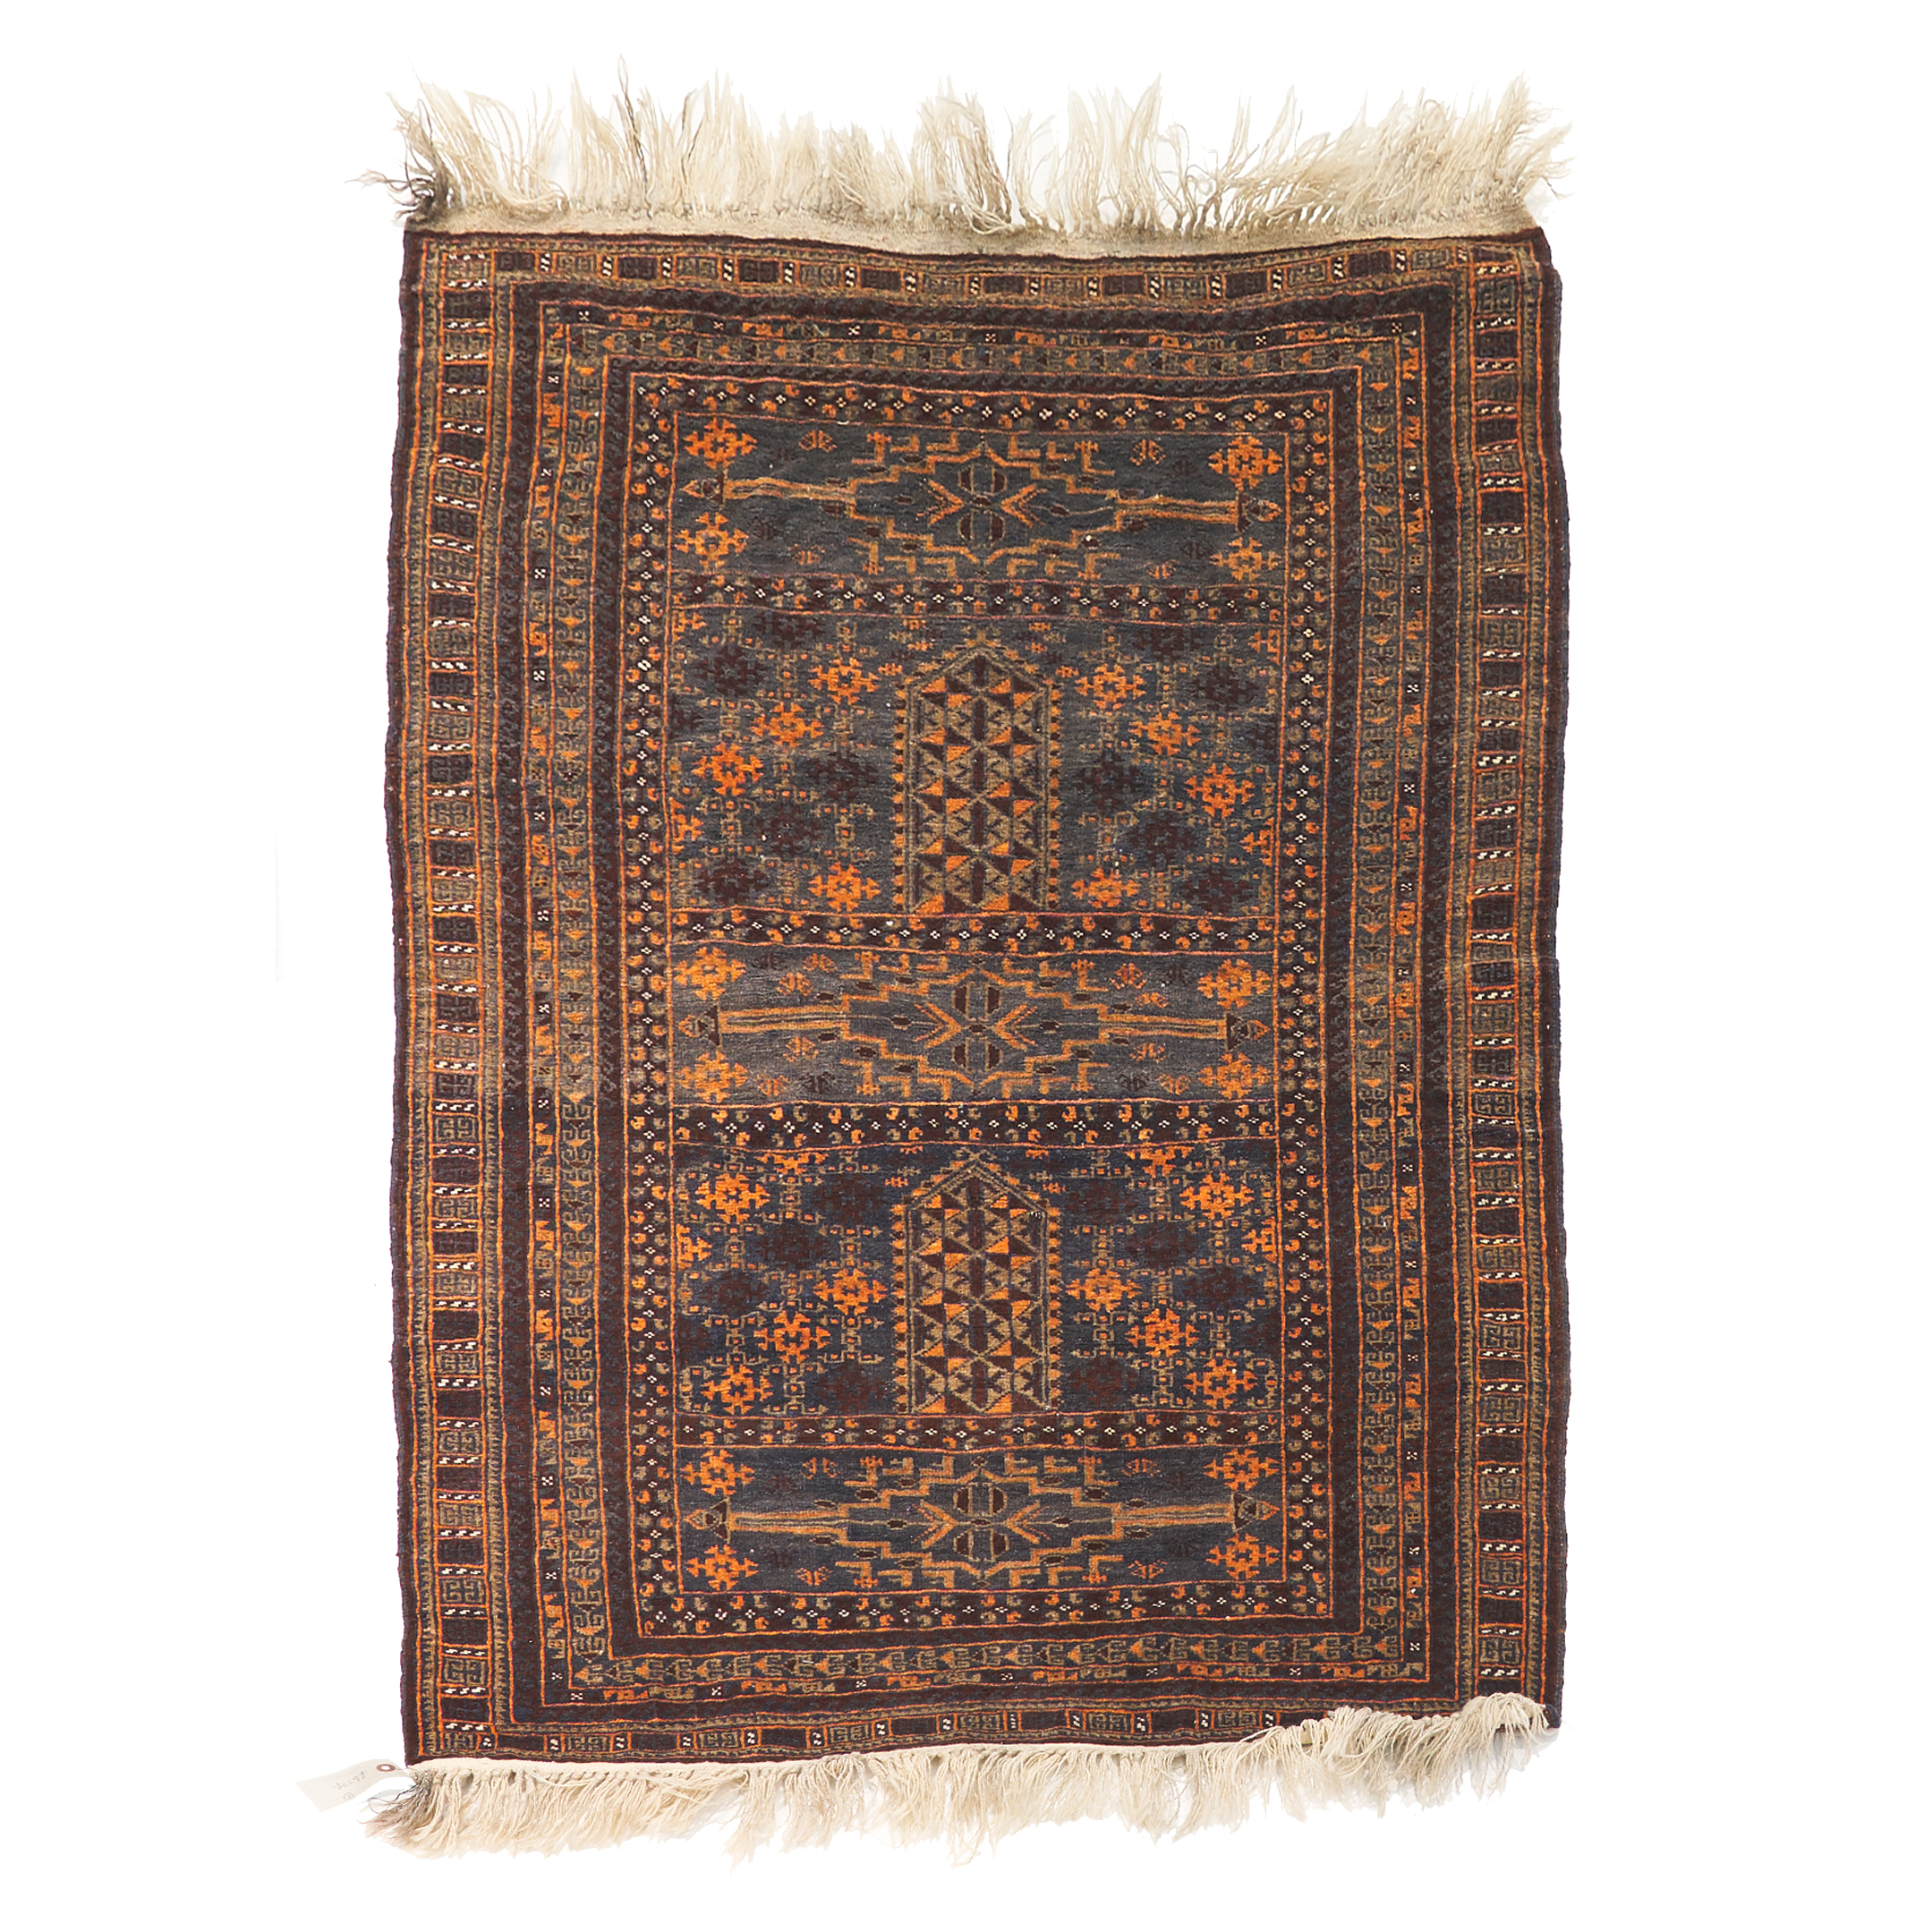 Afghan Belouchi Prayer Rug, c.1960